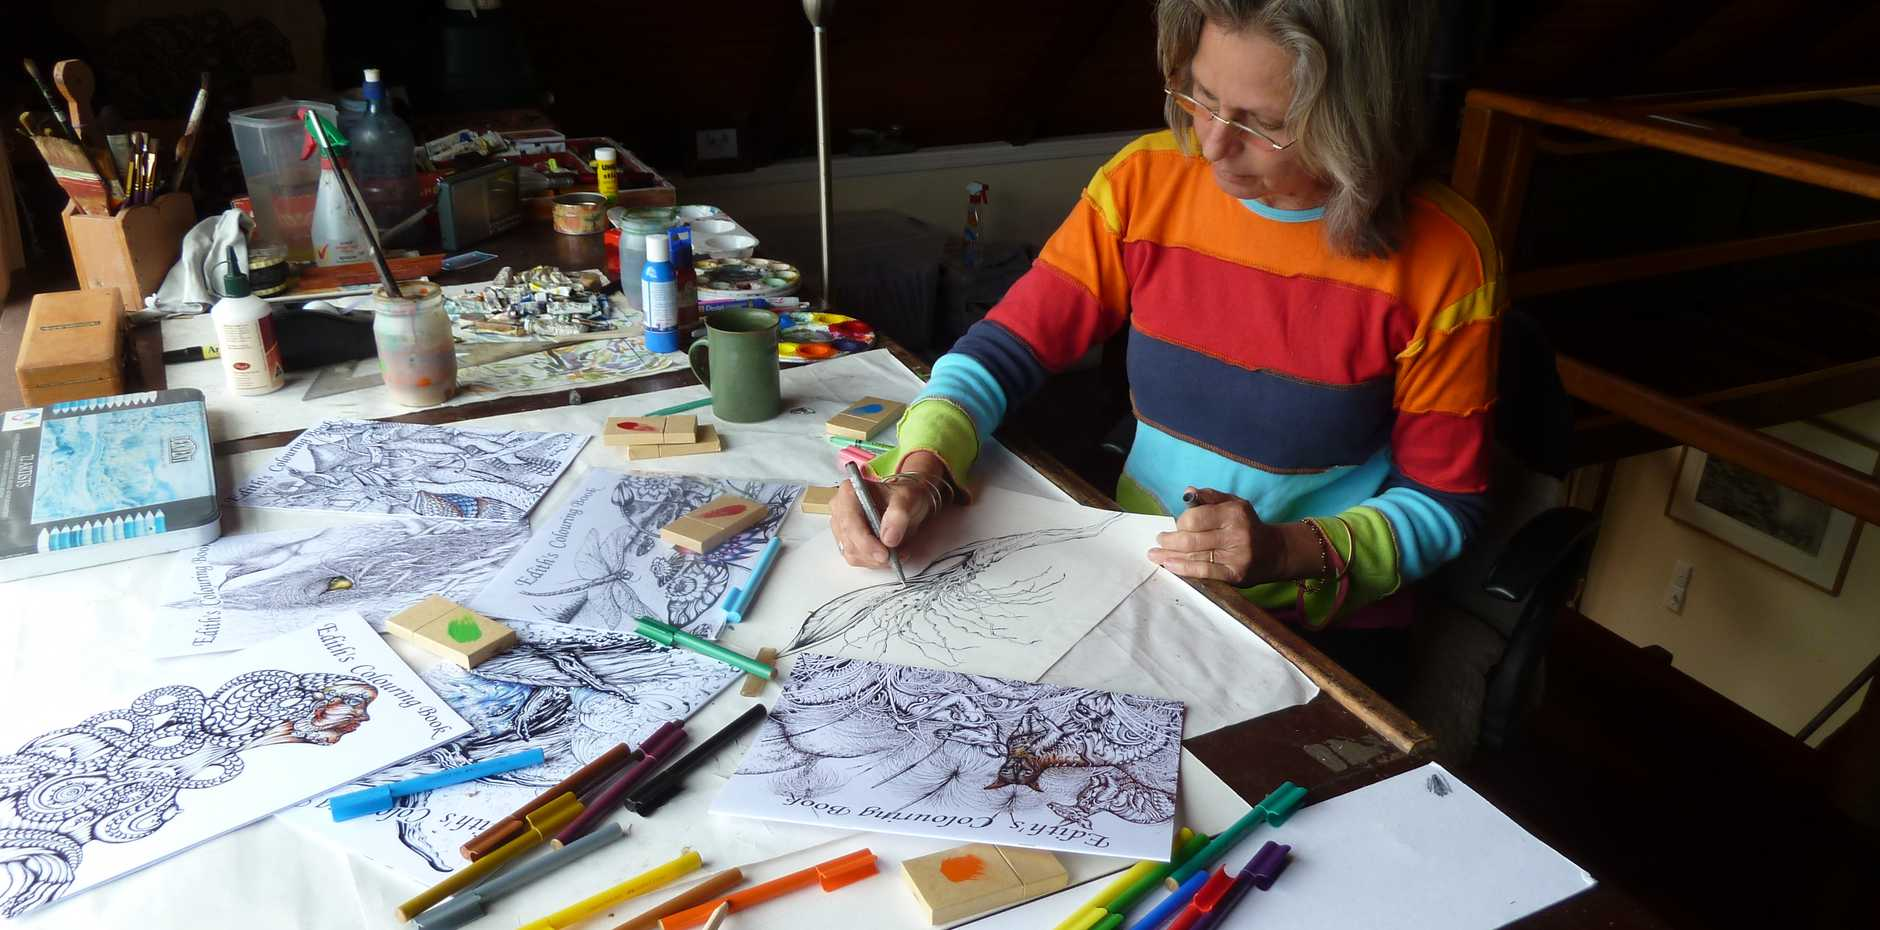 Colouring-in has become a popular way for adults to relax and de-stress.